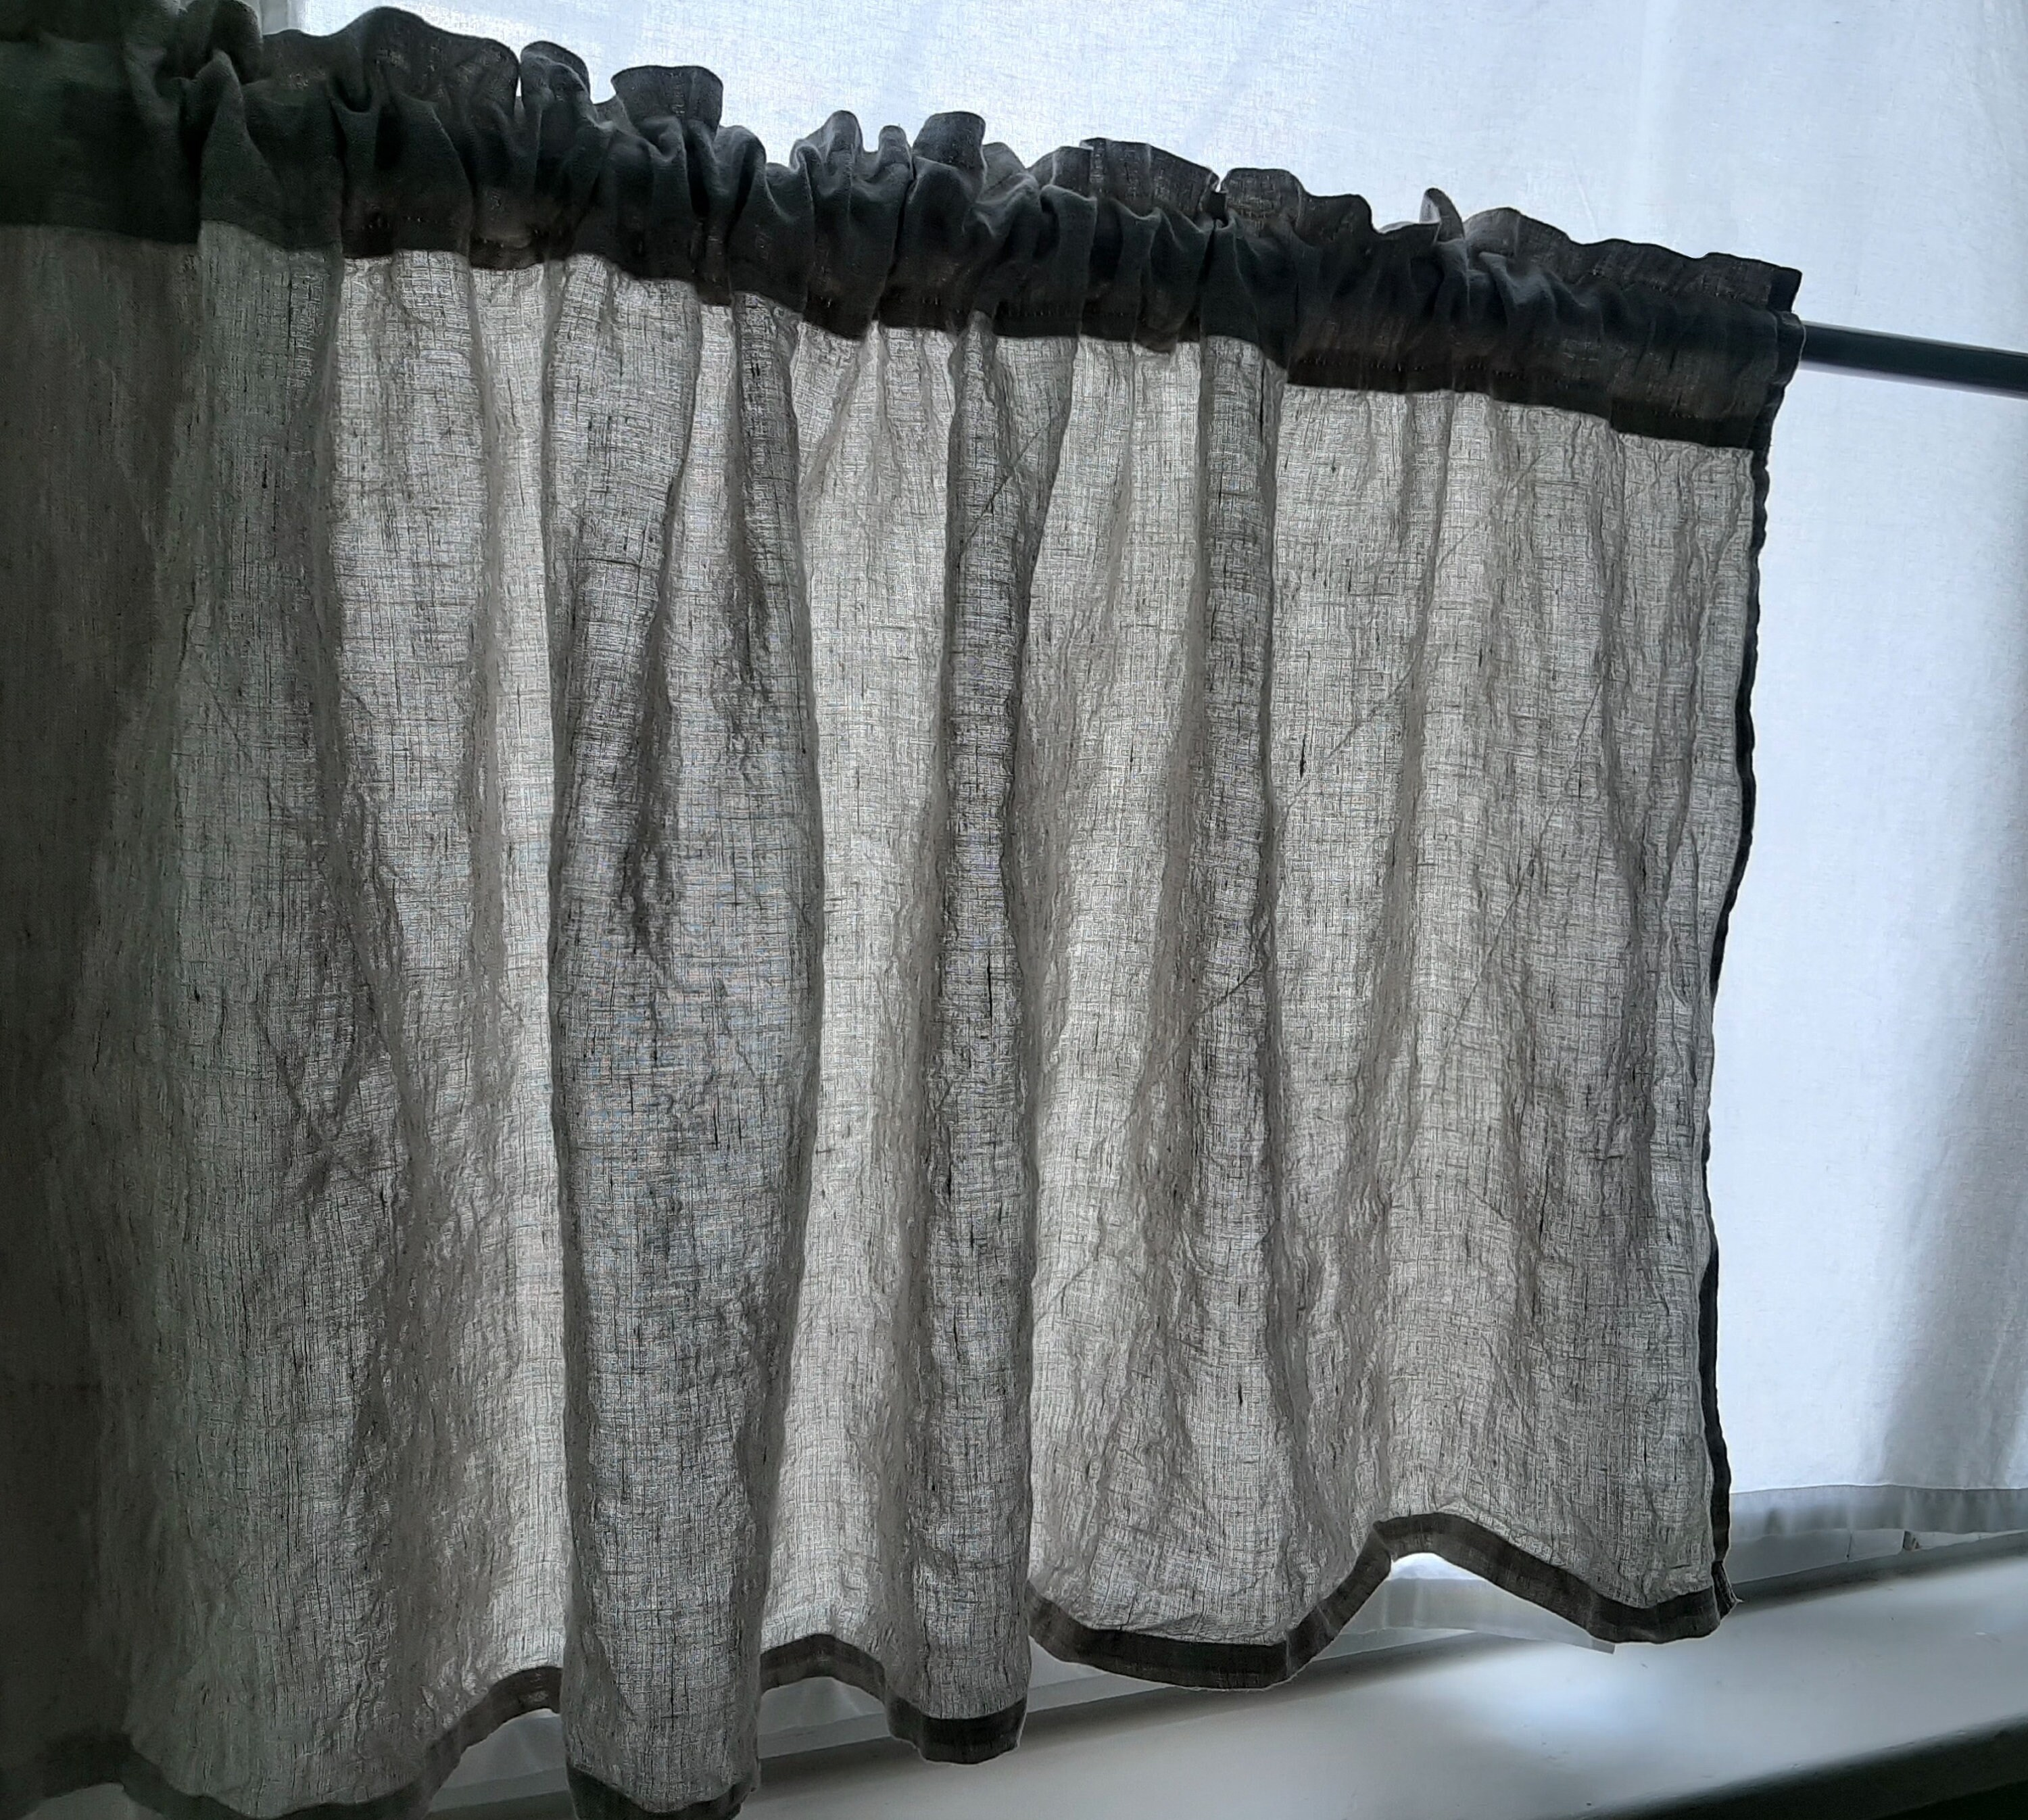 Stone Washed Rod Pocket Linen Curtain With Decorative Header Panel Extra Long White Curtain Door Curtain Shower Curtains Kitchen Curtains